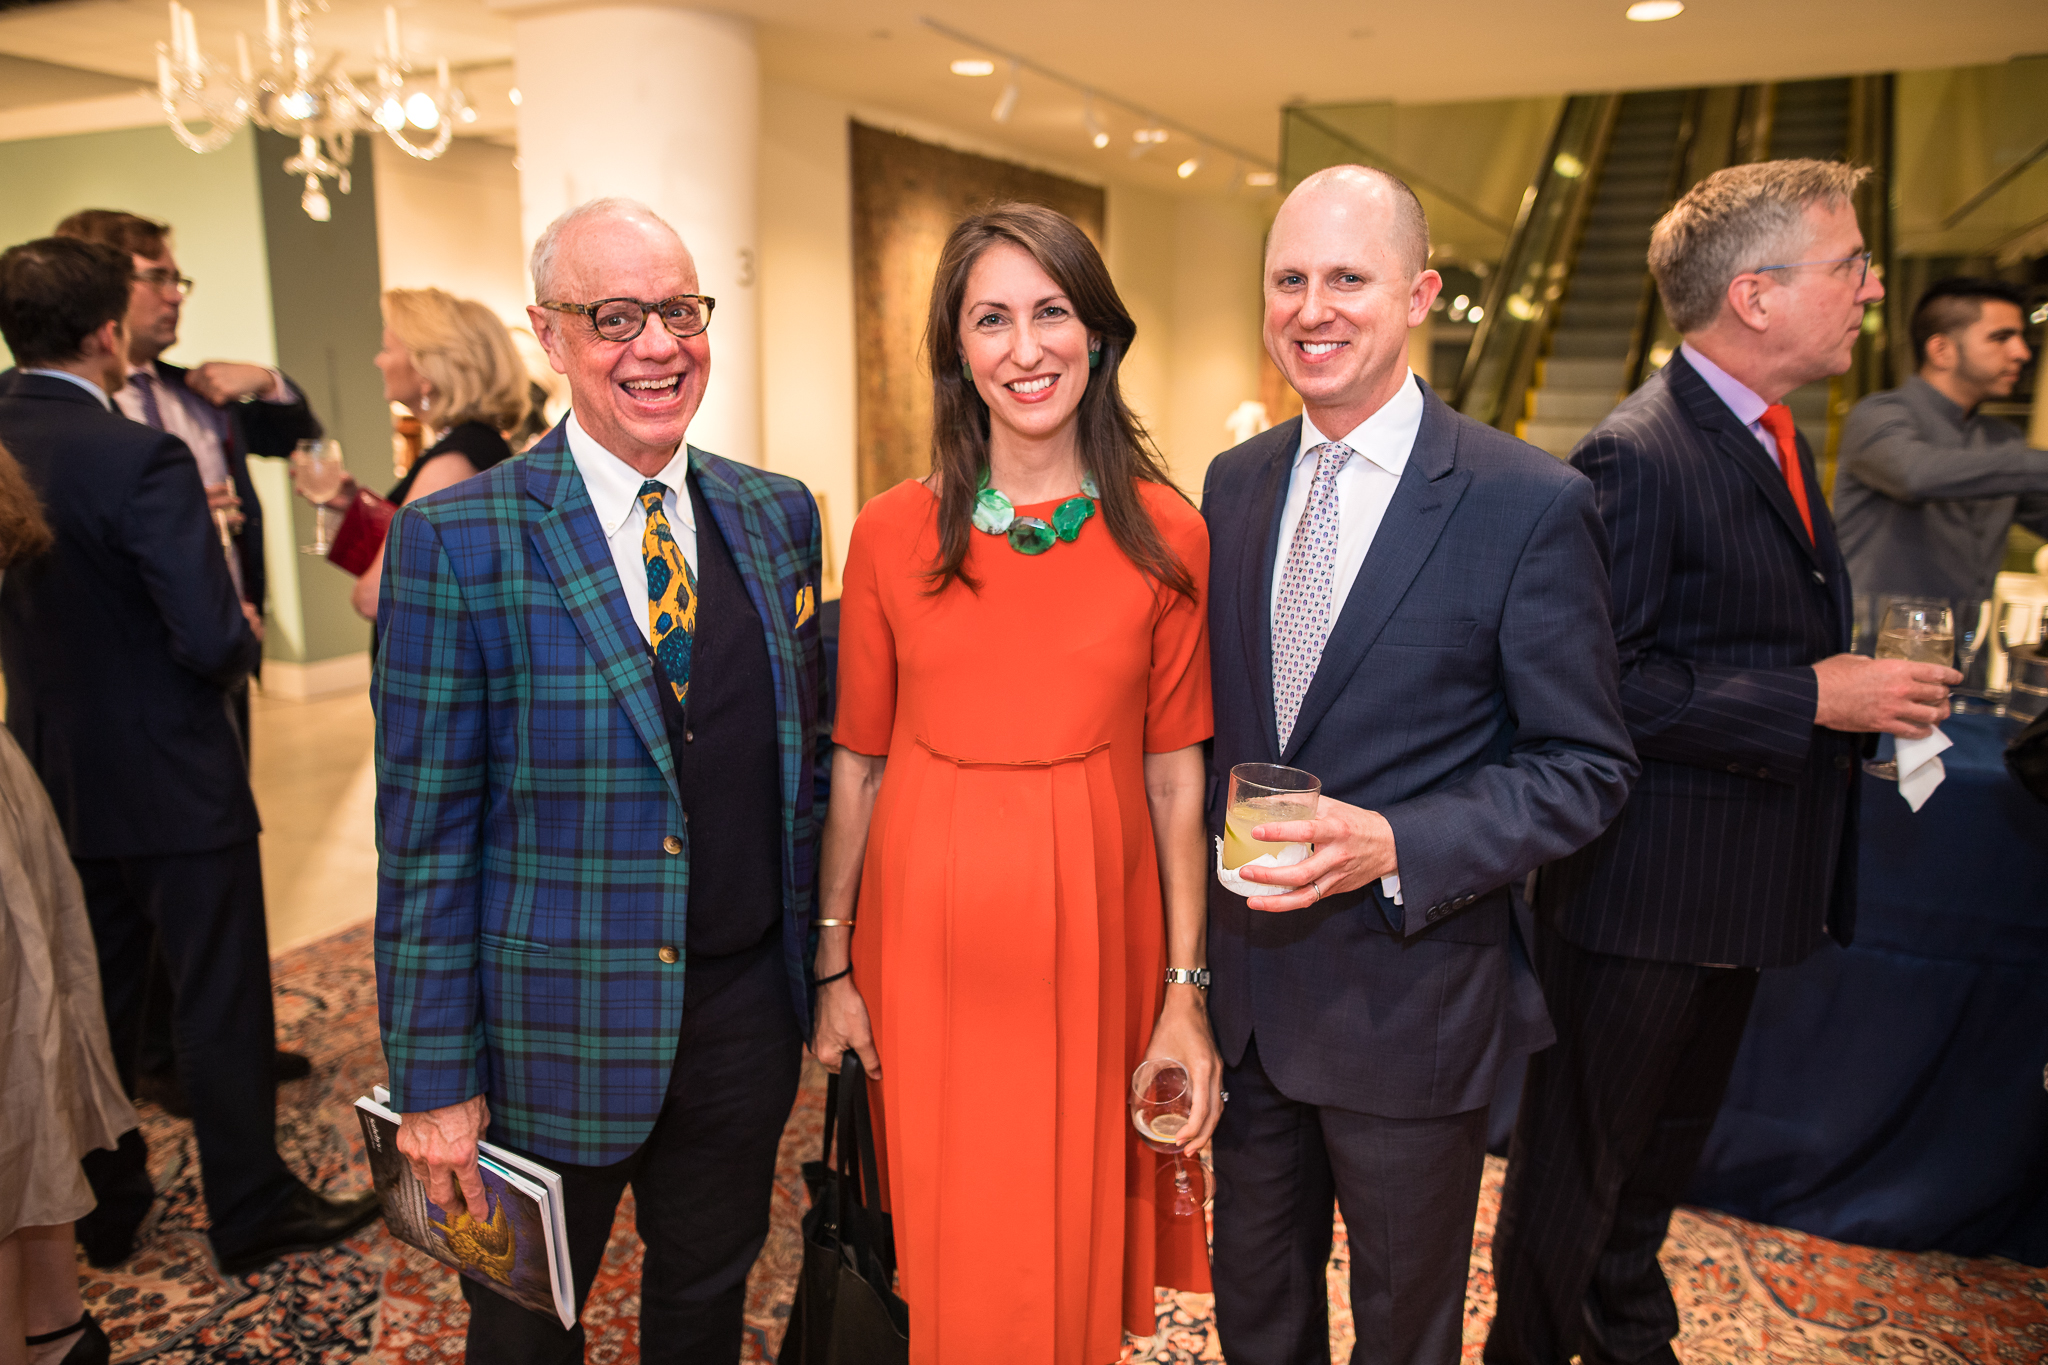 Ralph Harvard of Ralph Harvard Inc., Julia Noran of Editor at Large and Jason Busch, Sotheby's division director, Decorative Arts